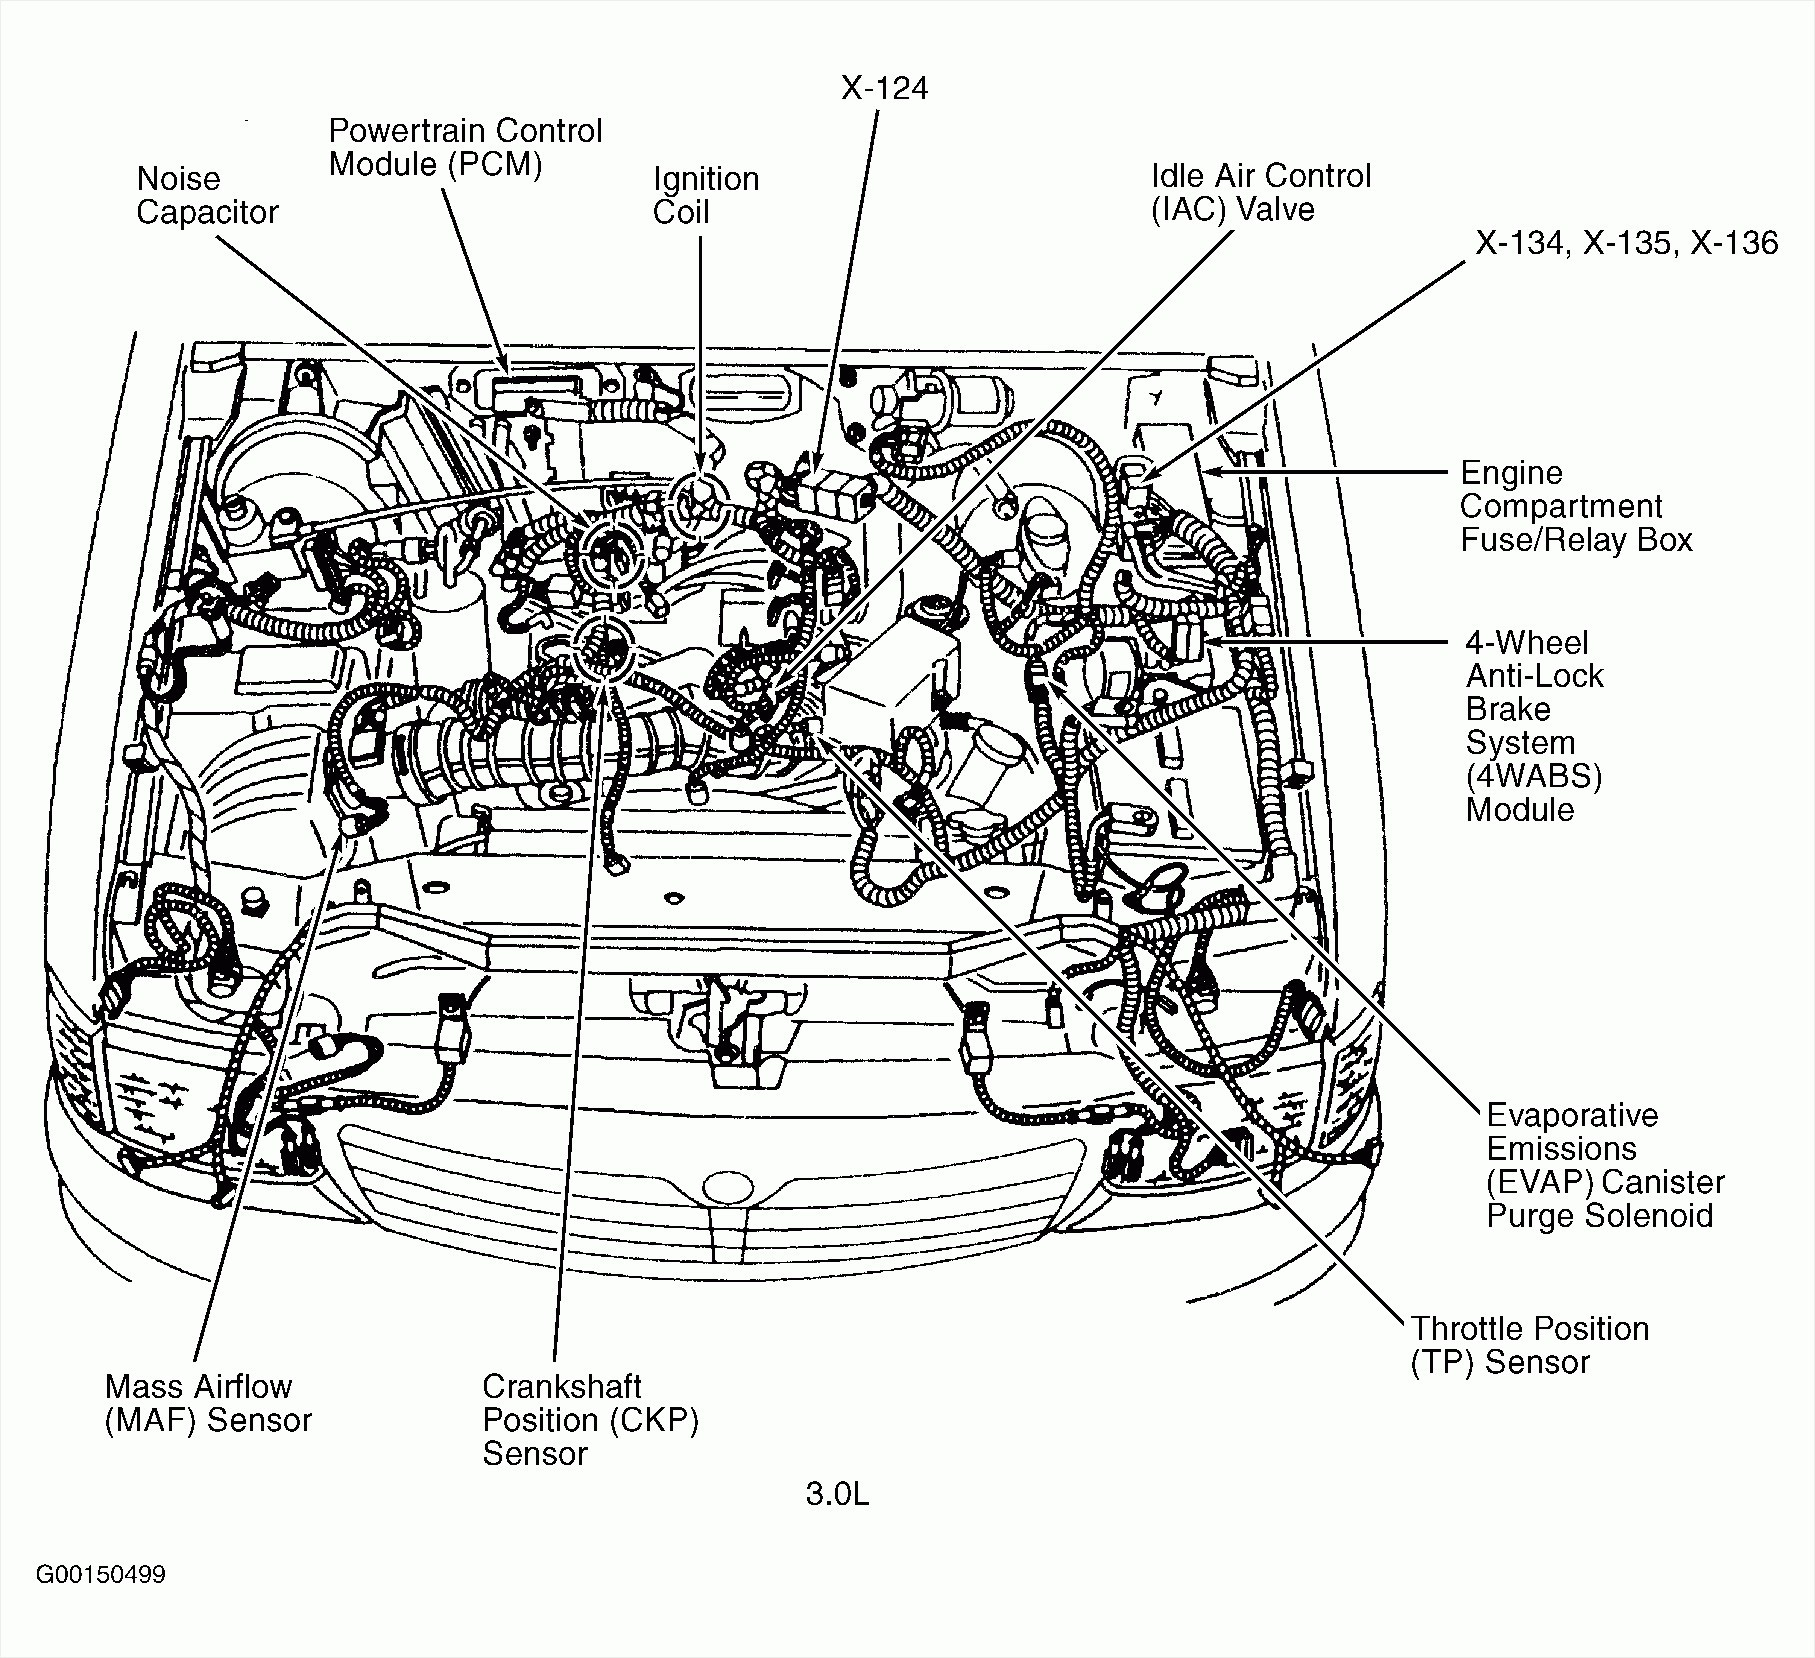 hight resolution of 2000 ford taurus dohc engine diagram also 2000 ford ranger 3 0 head 1999 ford taurus